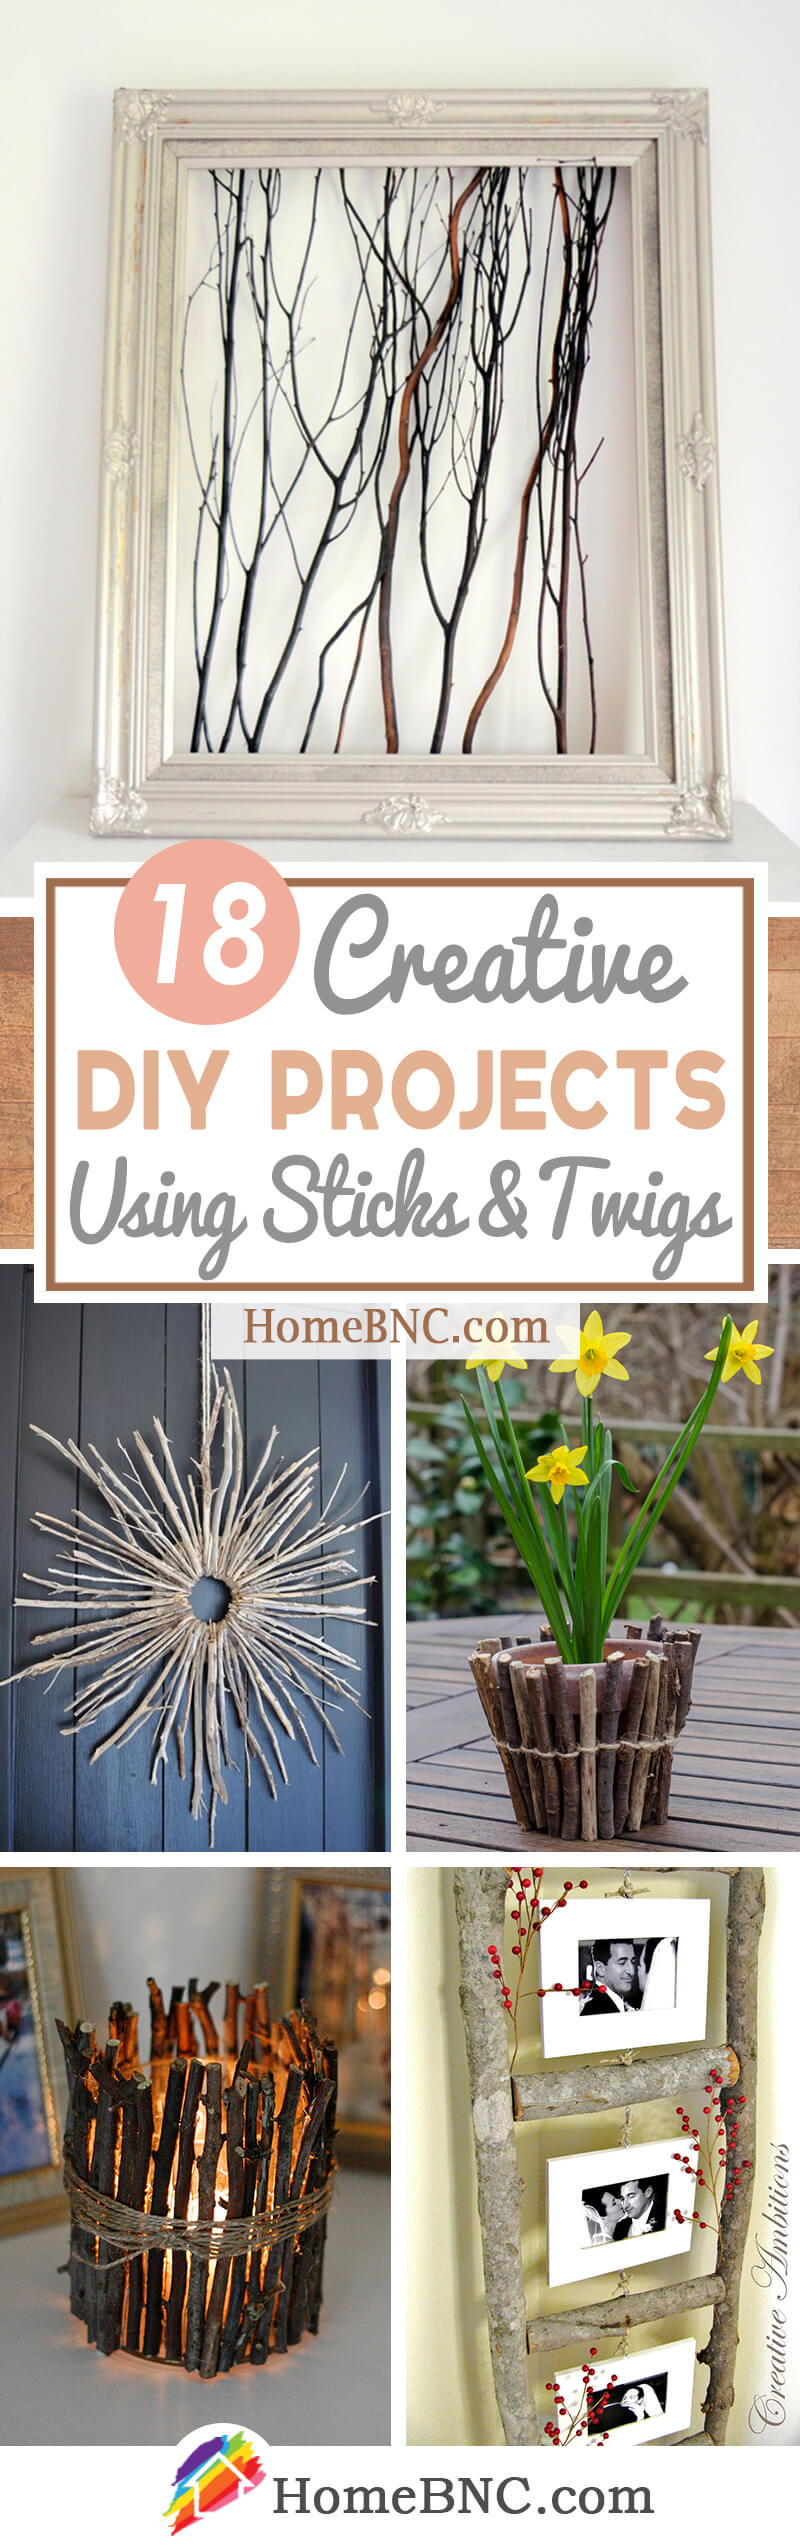 DIY Home and Garden Projects Using Sticks and Twigs